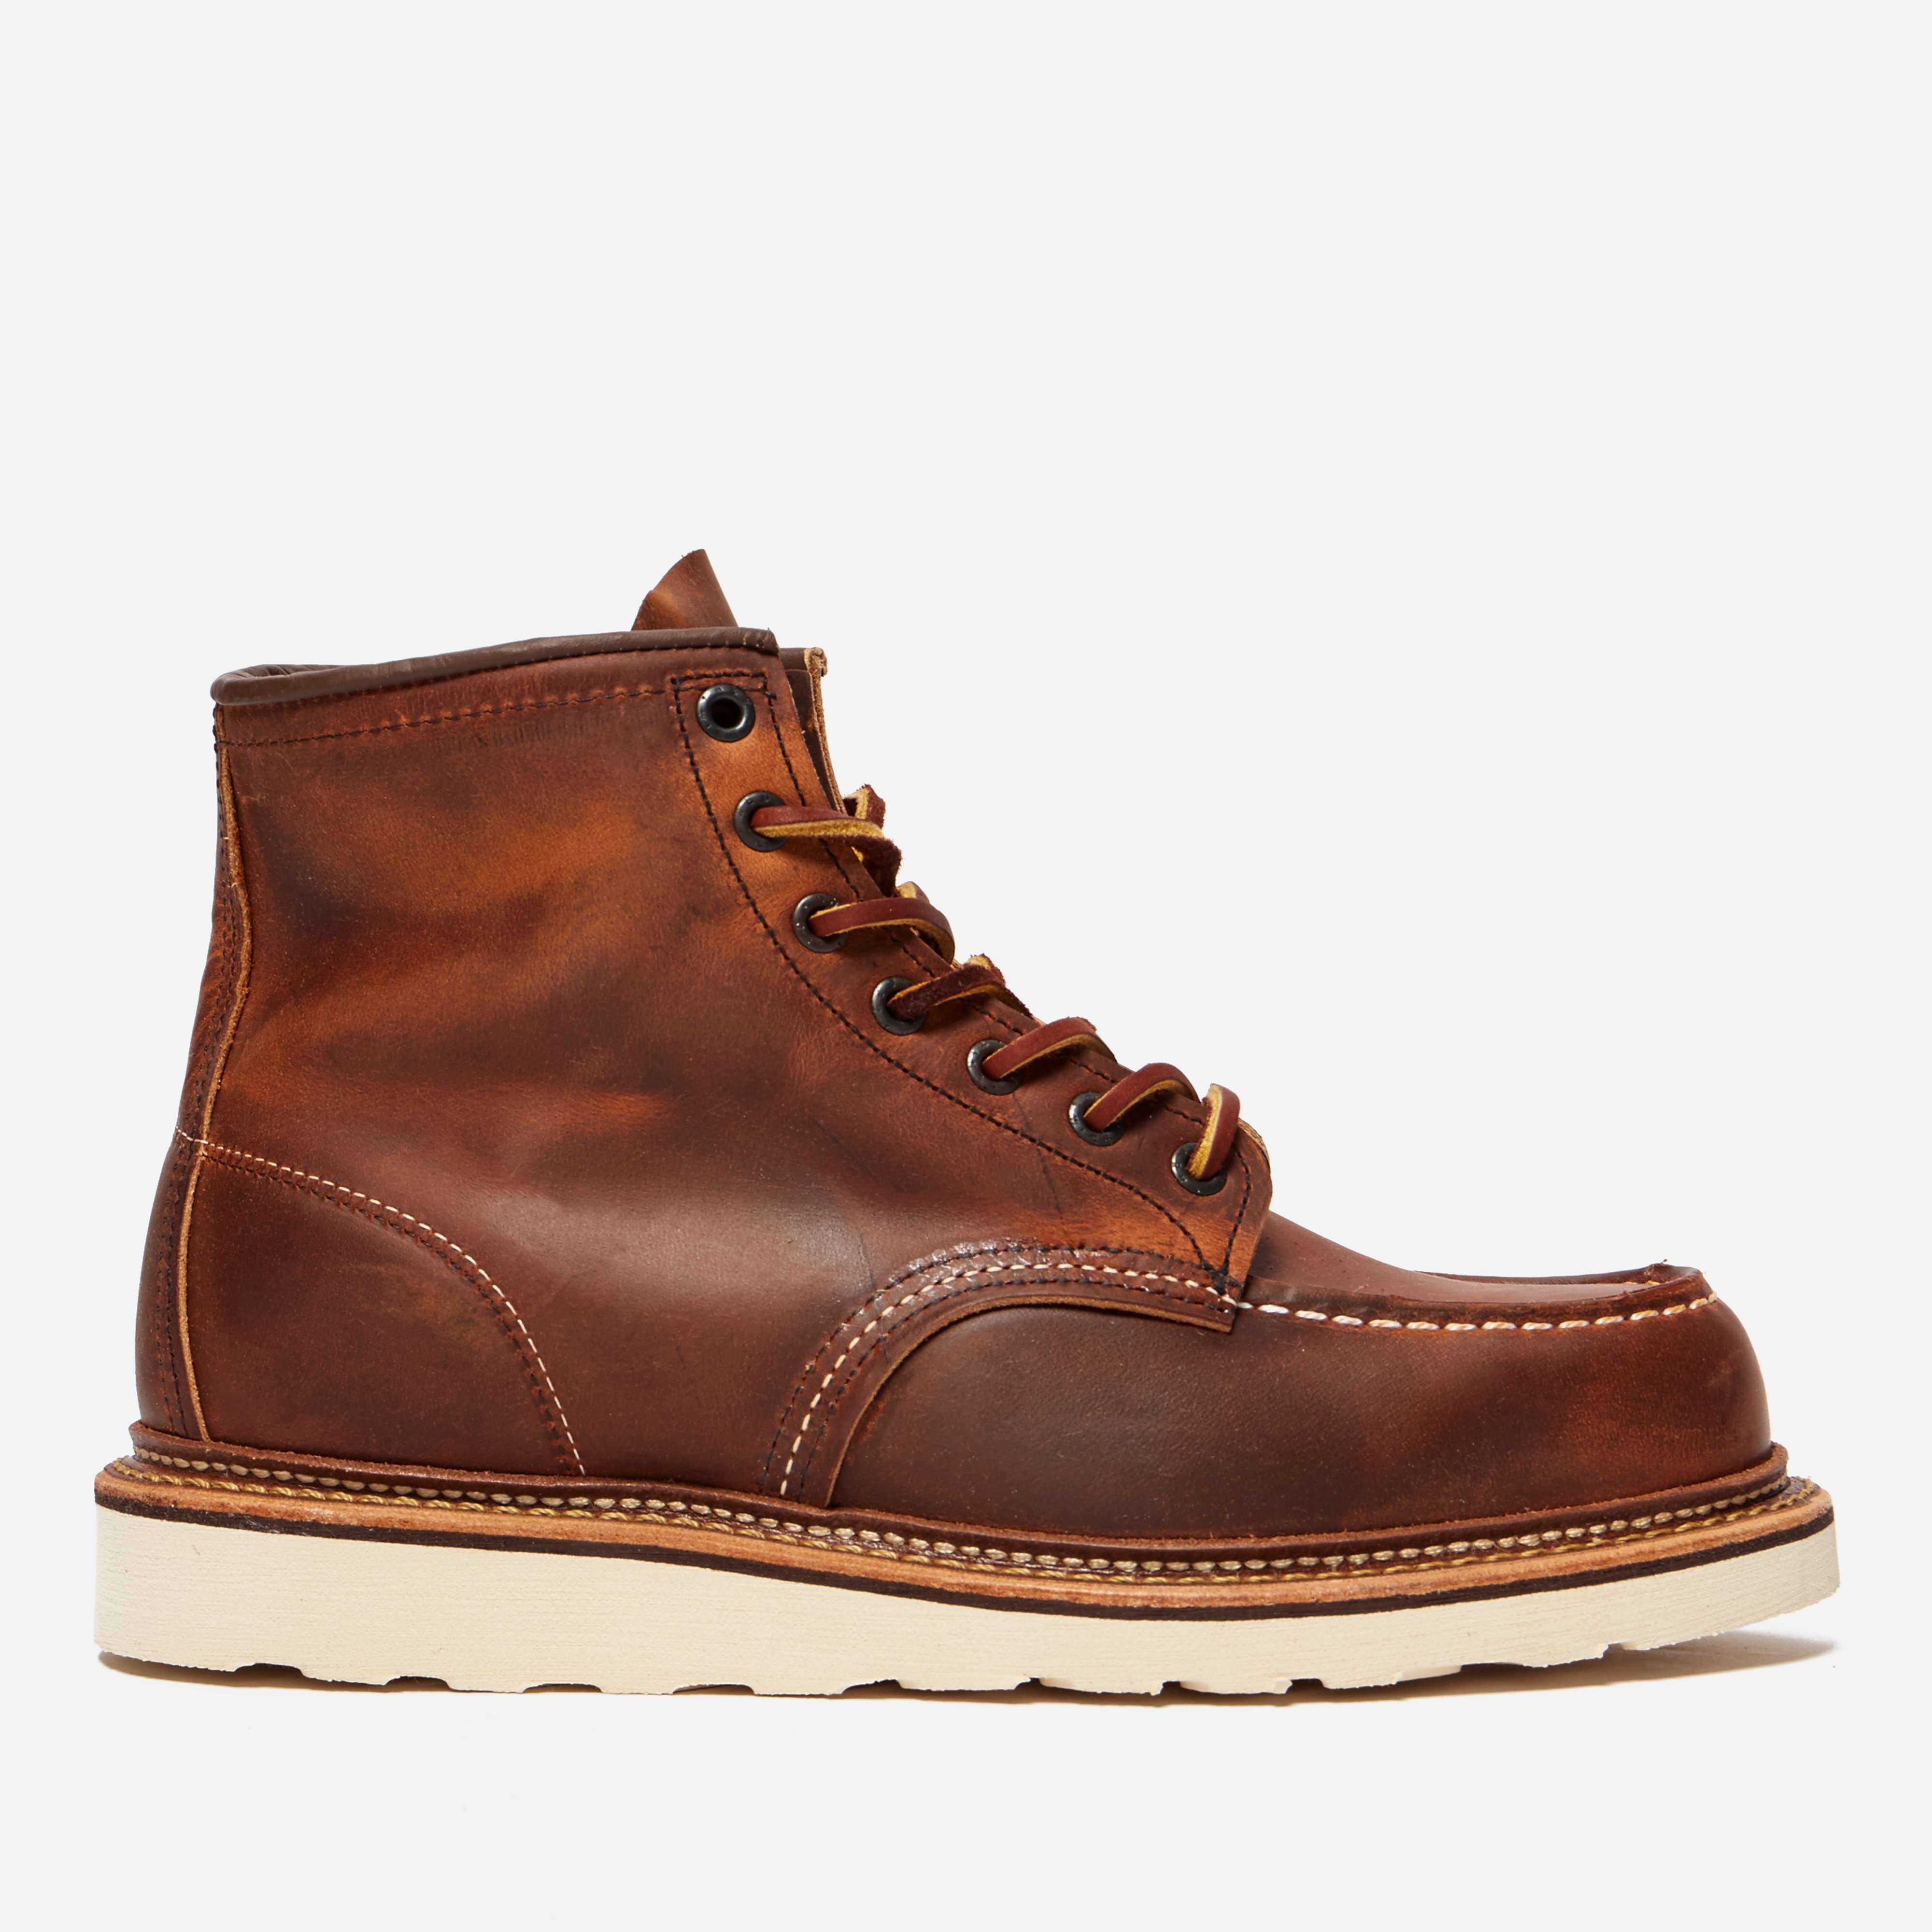 Red Wing 1907 Moc Toe Boot